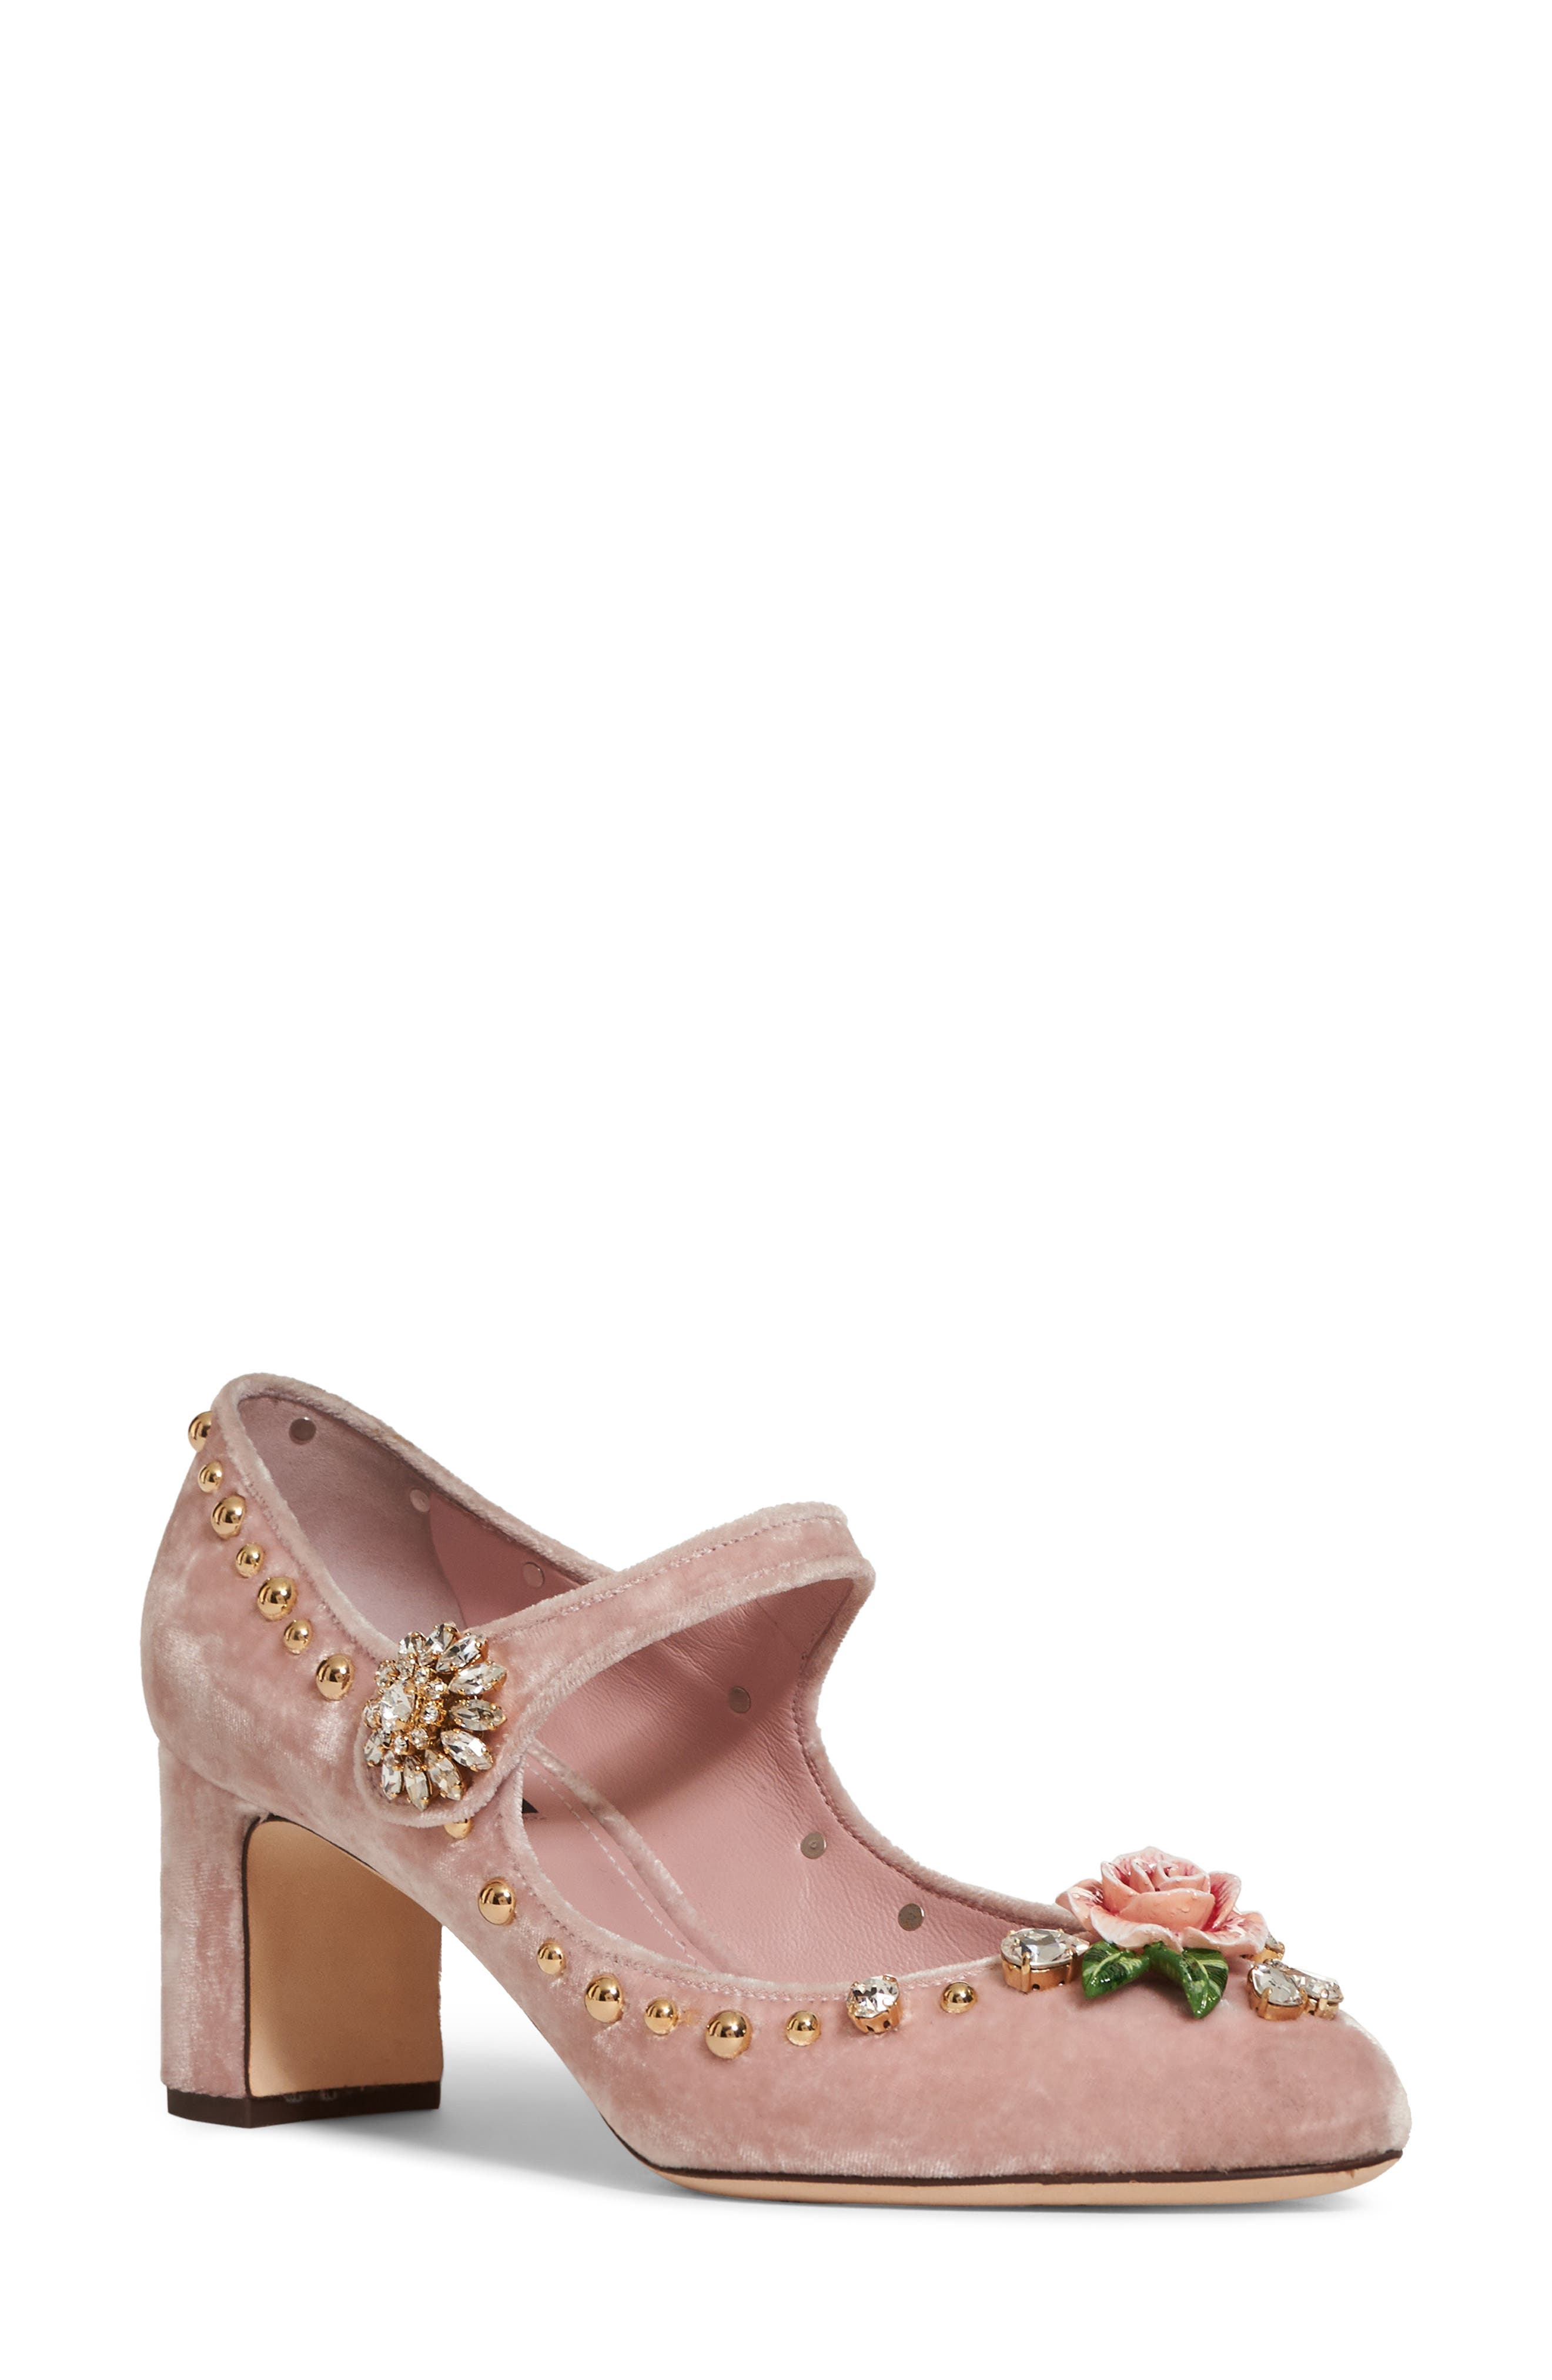 Rose Mary Jane Pump,                         Main,                         color, Pink